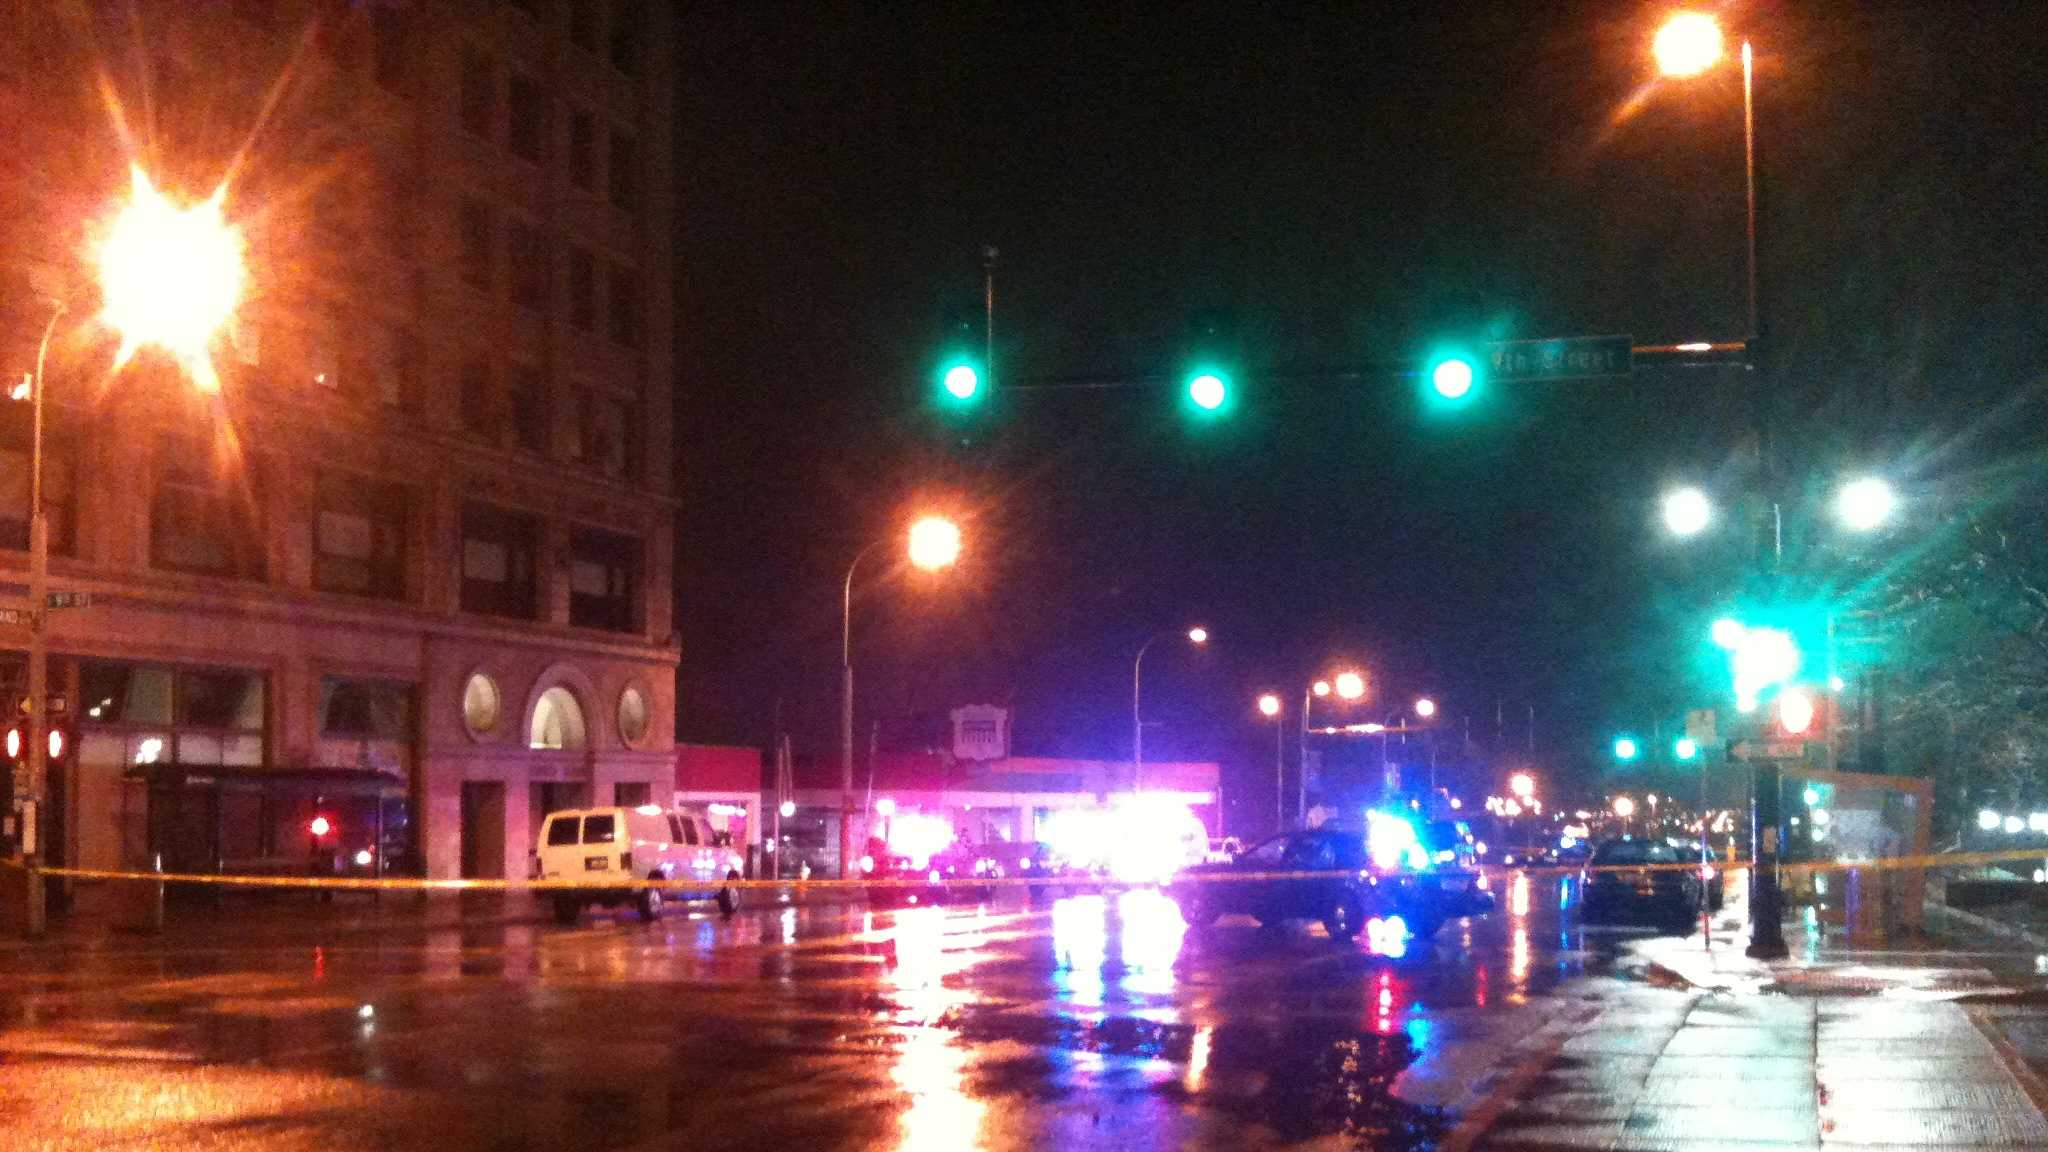 Officer involved shooting at 8th and Grand